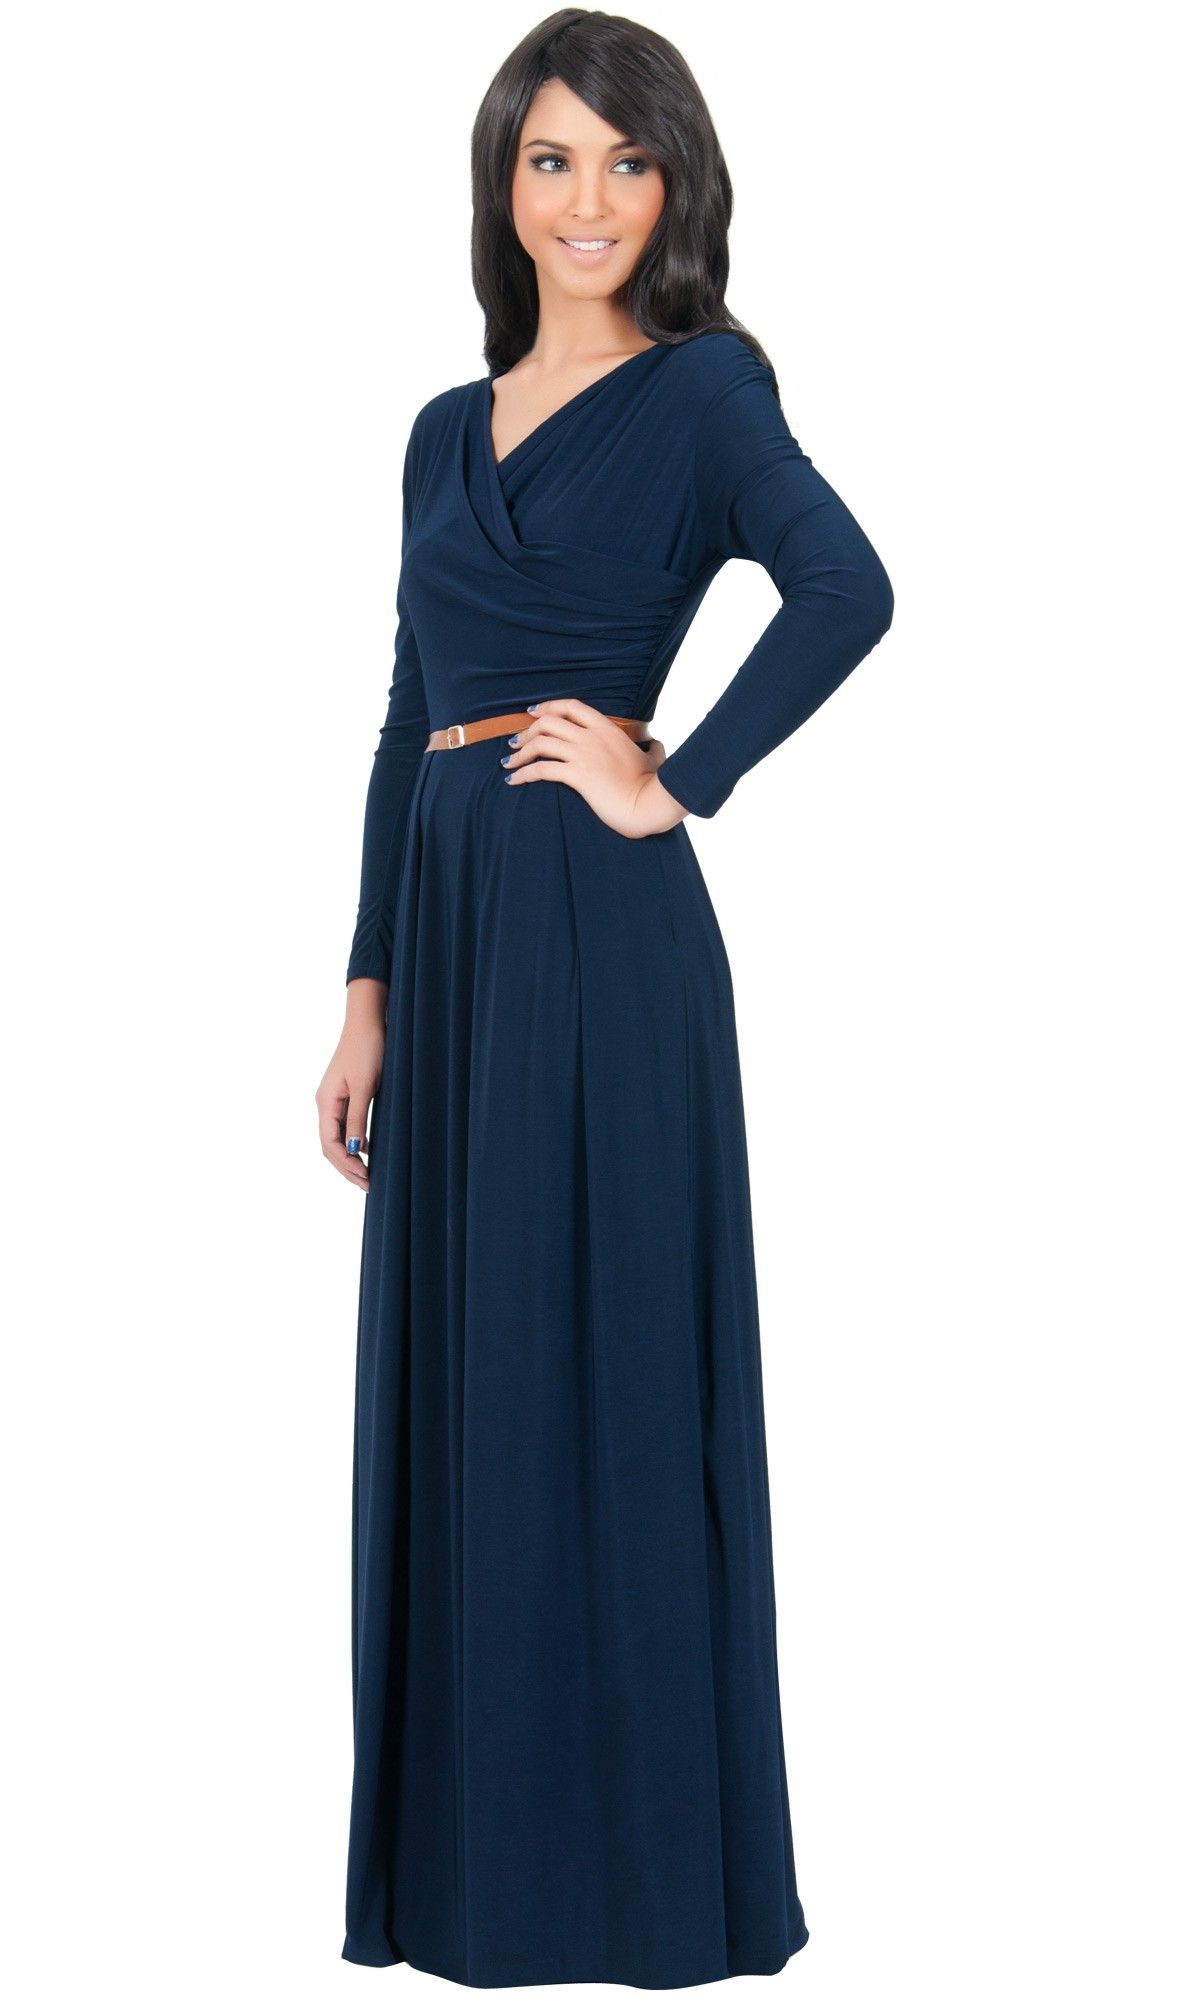 Long sleeve dress in our gcg range with sizing available from